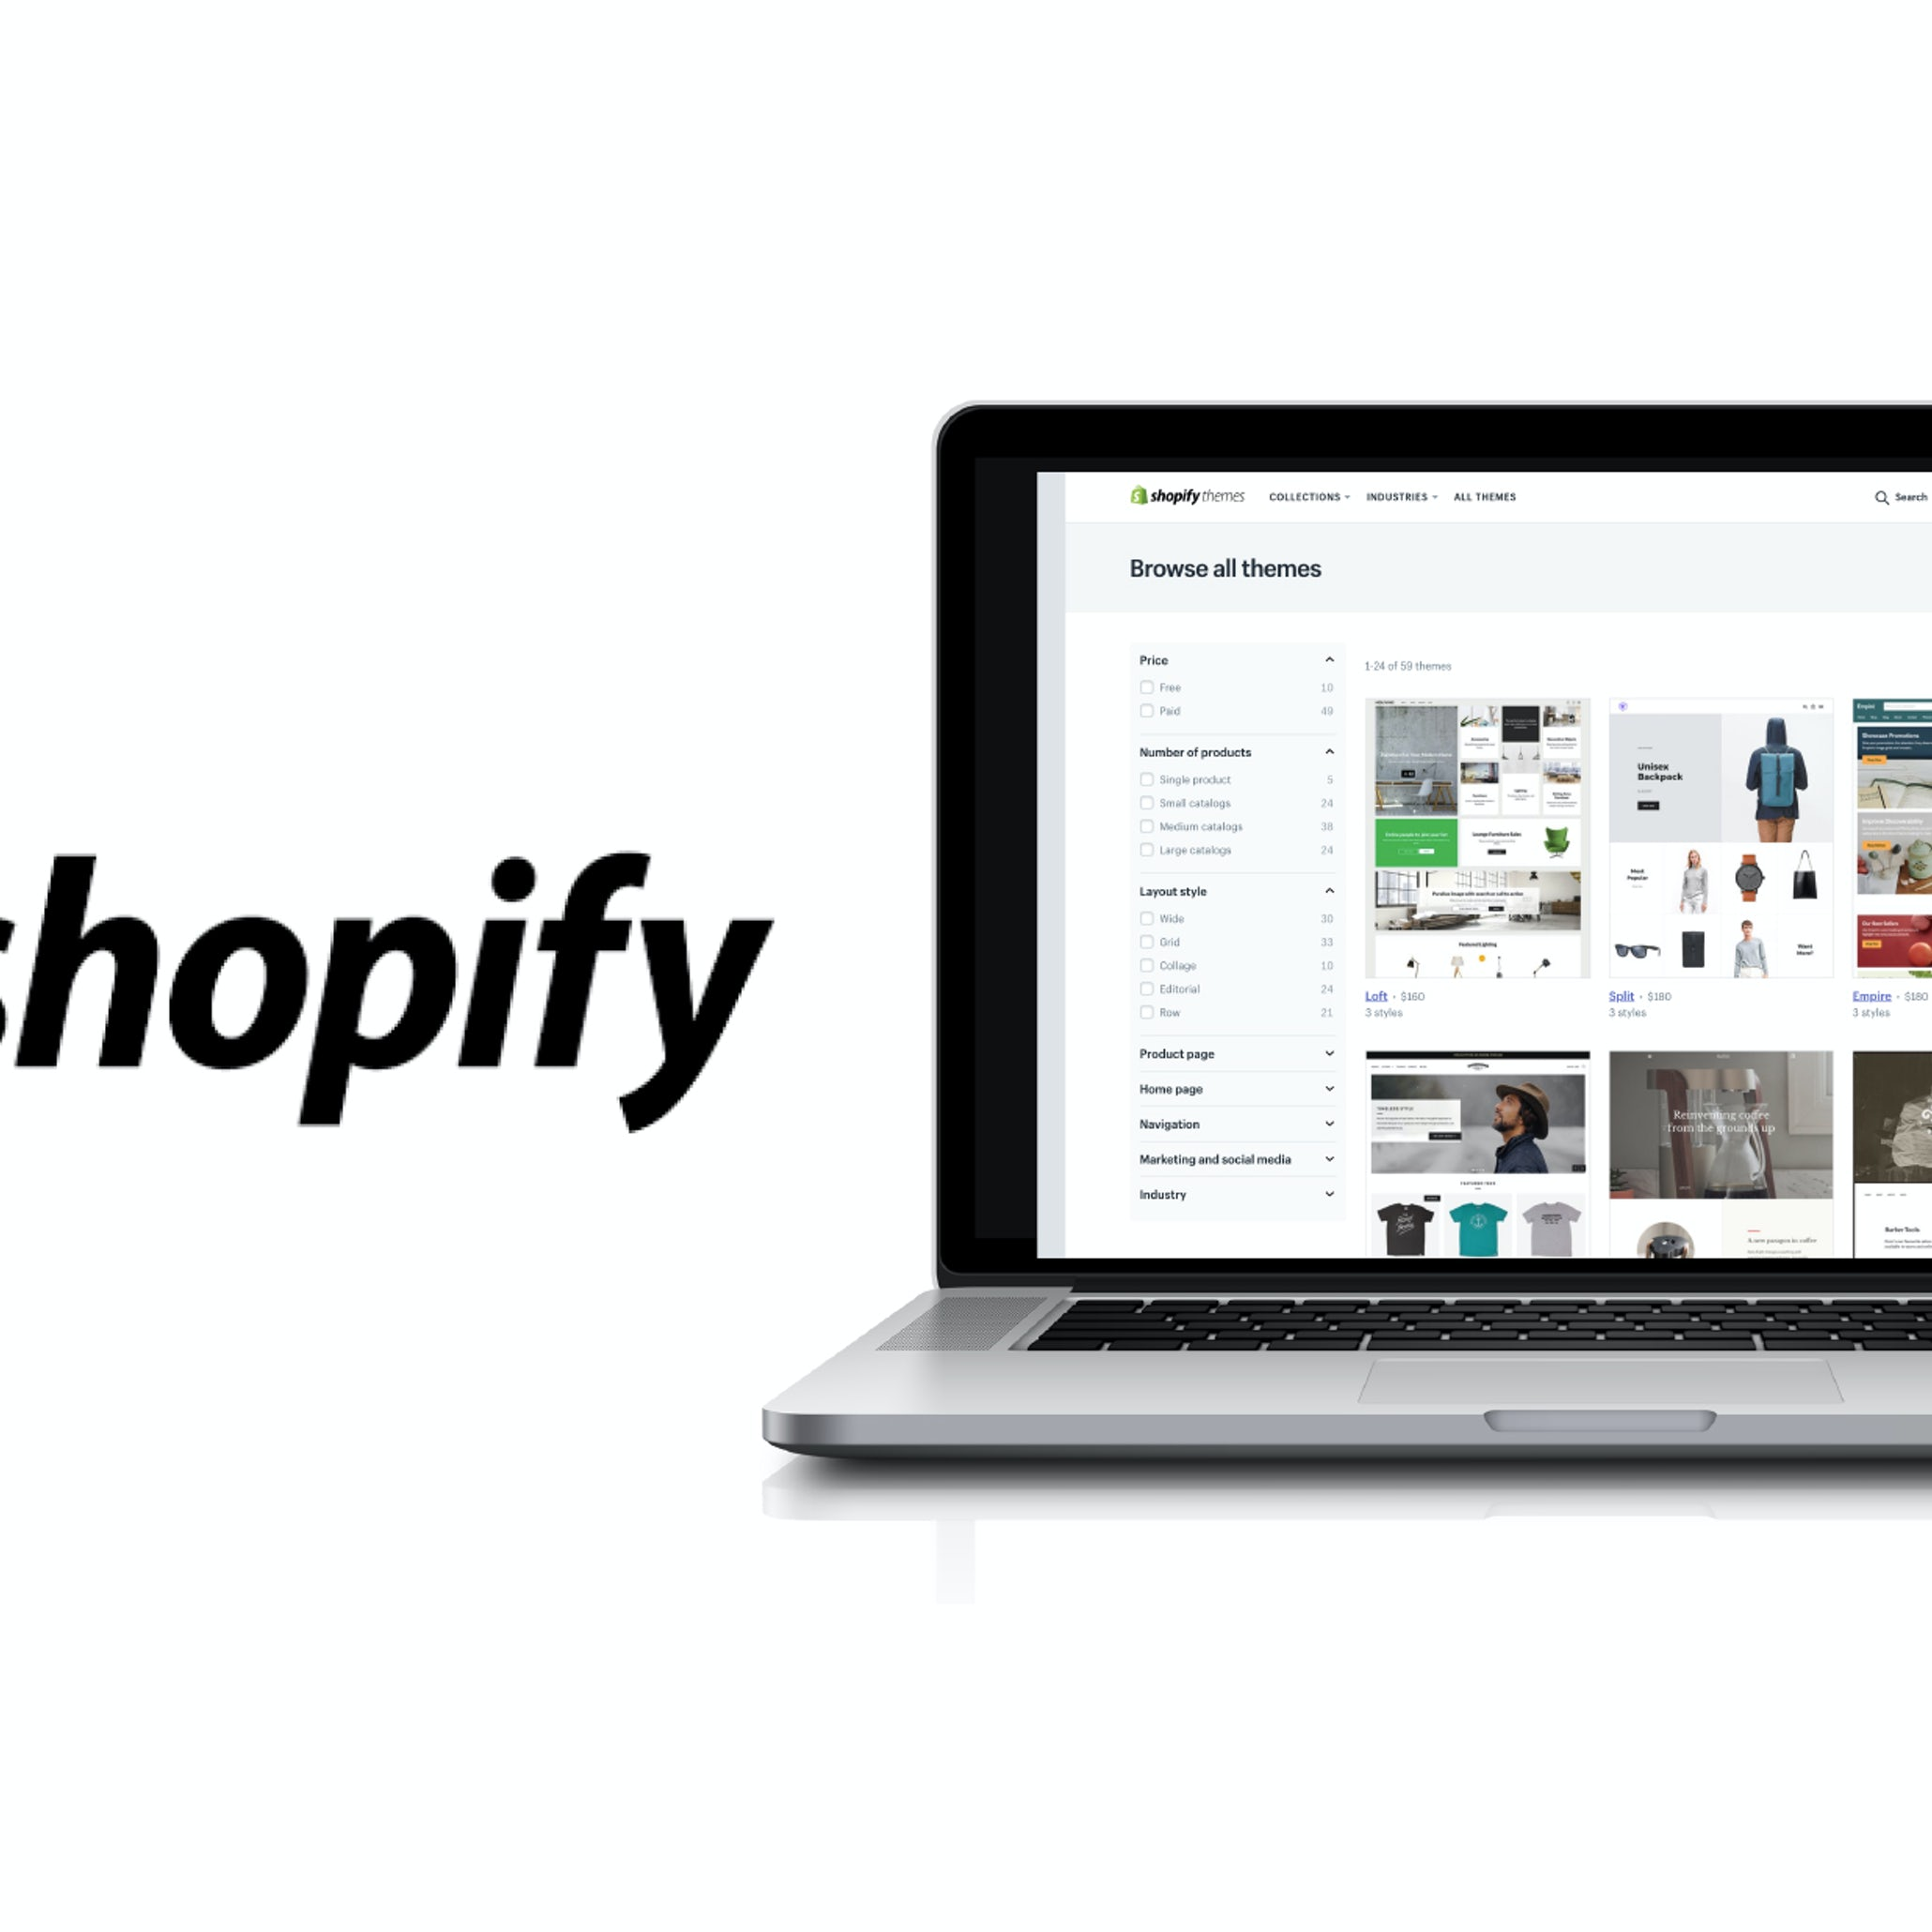 7 design tactics for your Shopify store - 99designs